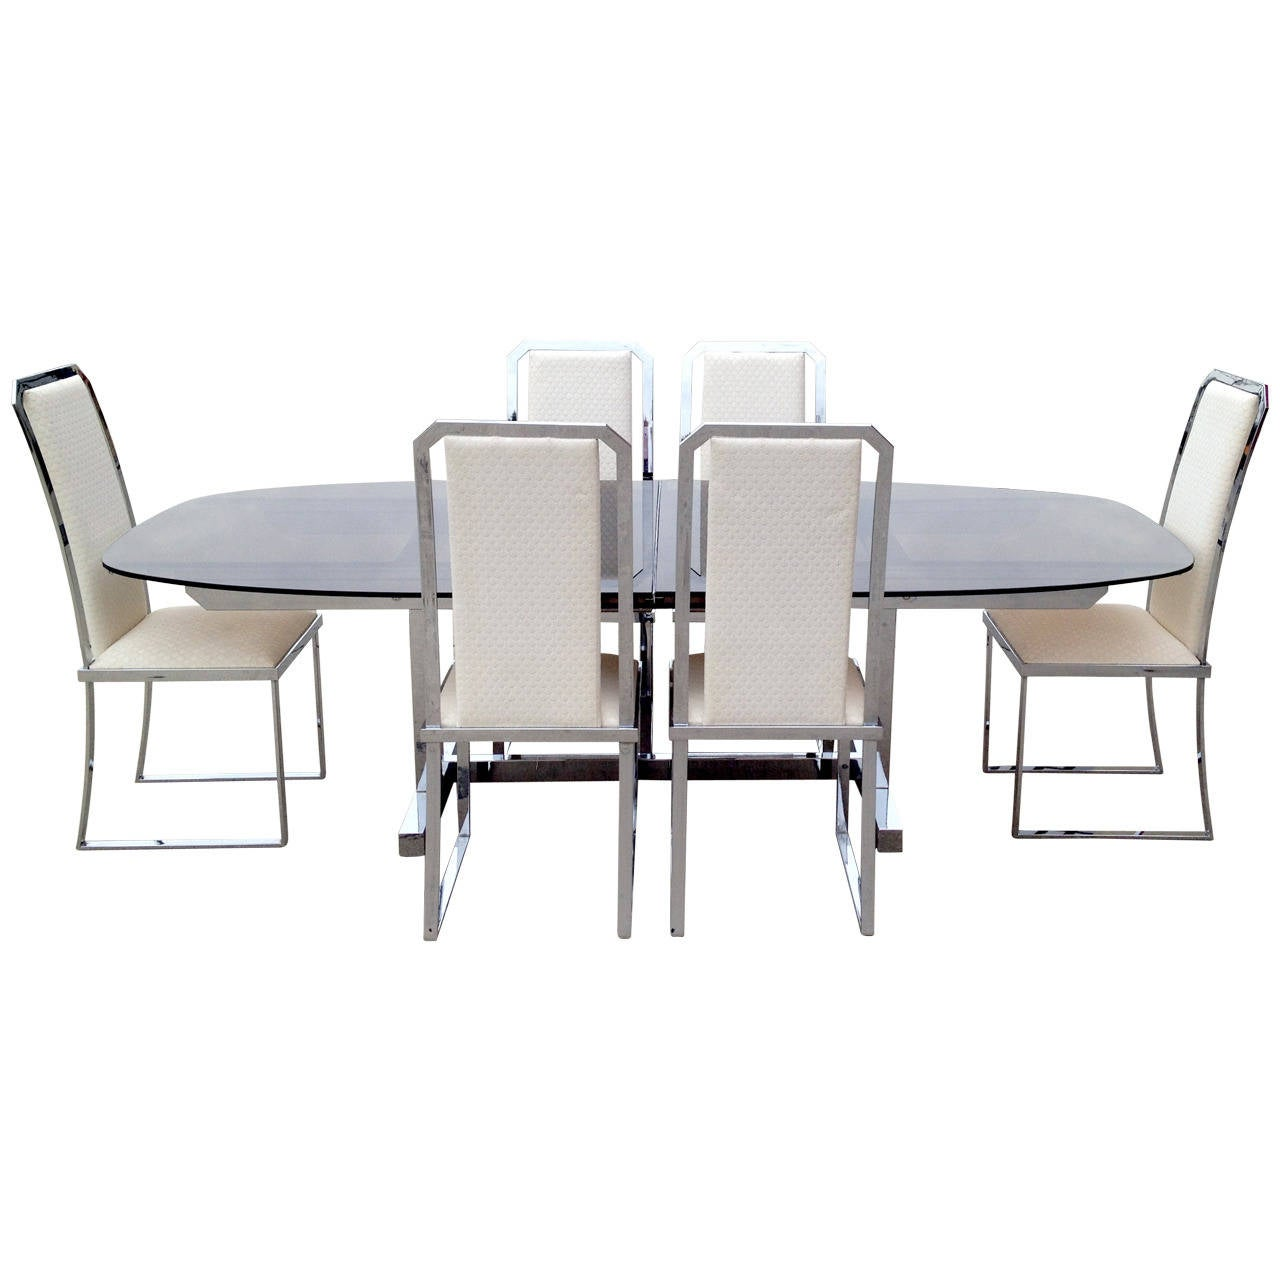 1970s dining set in the manner of milo baughman at 1stdibs for 1970 dining room set